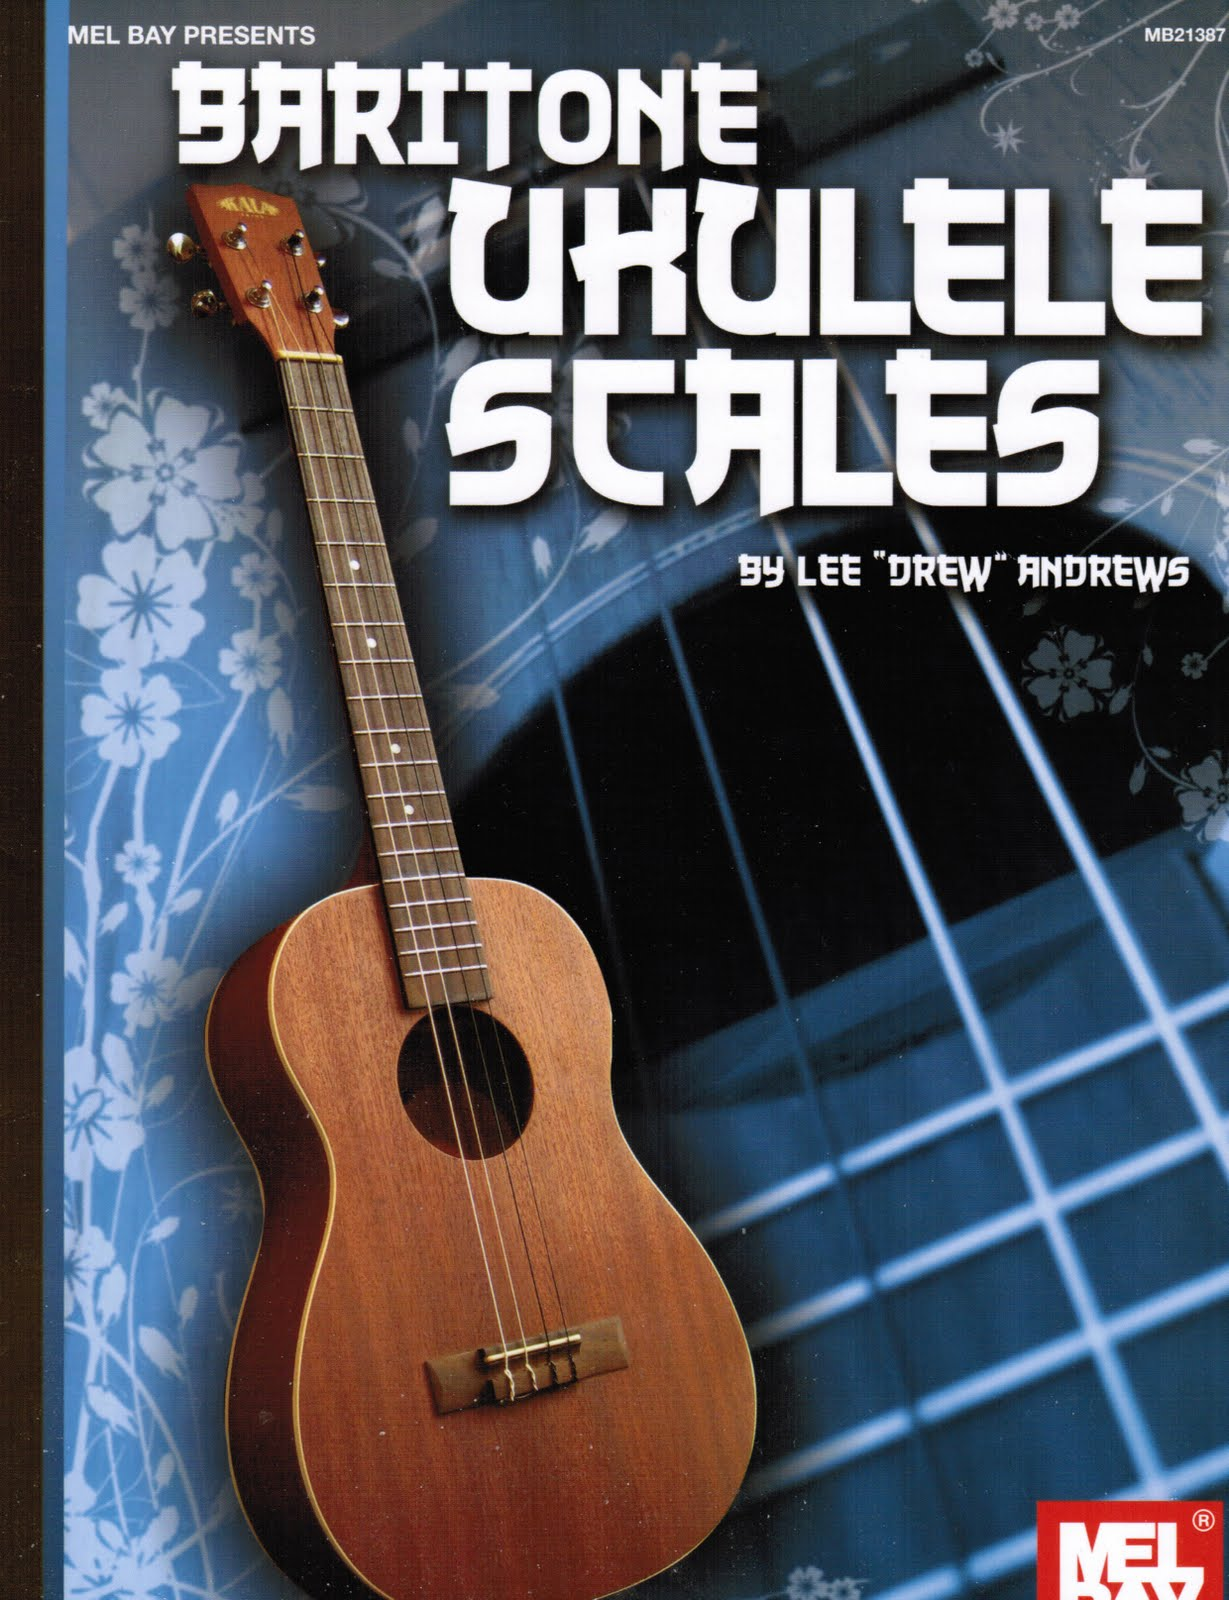 Humble Baritonics Books Baritone Ukulele Scales Mel Bay Some String Diagram There Is A Book That Has Scale Diagrams For Dgbe Players It Was Designed By Lee Drew Andrews And Published